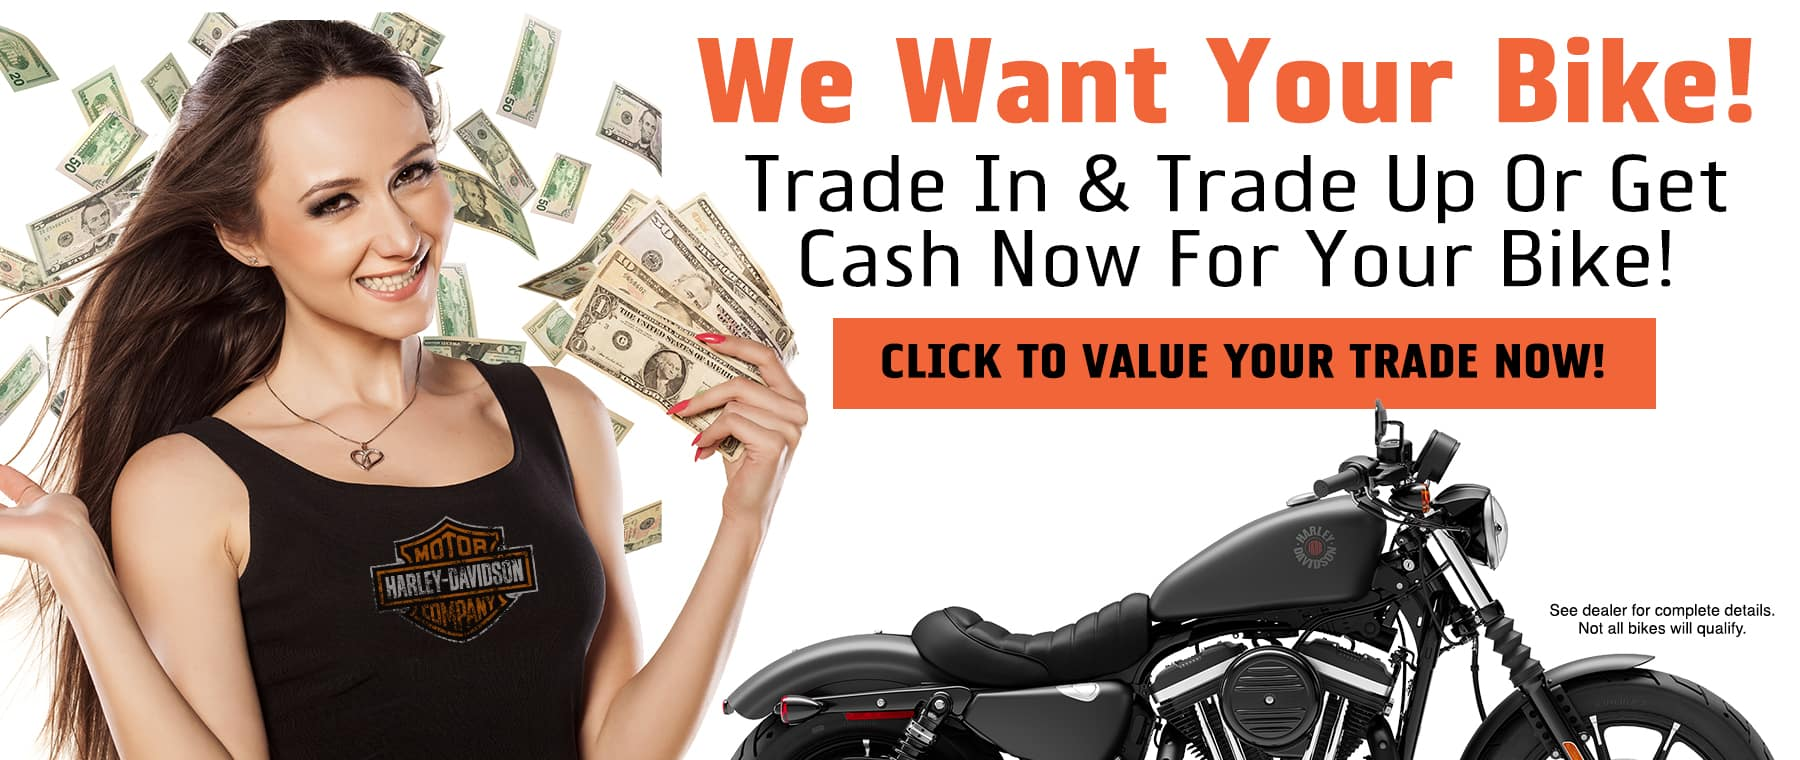 Trade In & Trade Up or Get Cash Now For Your Bike!